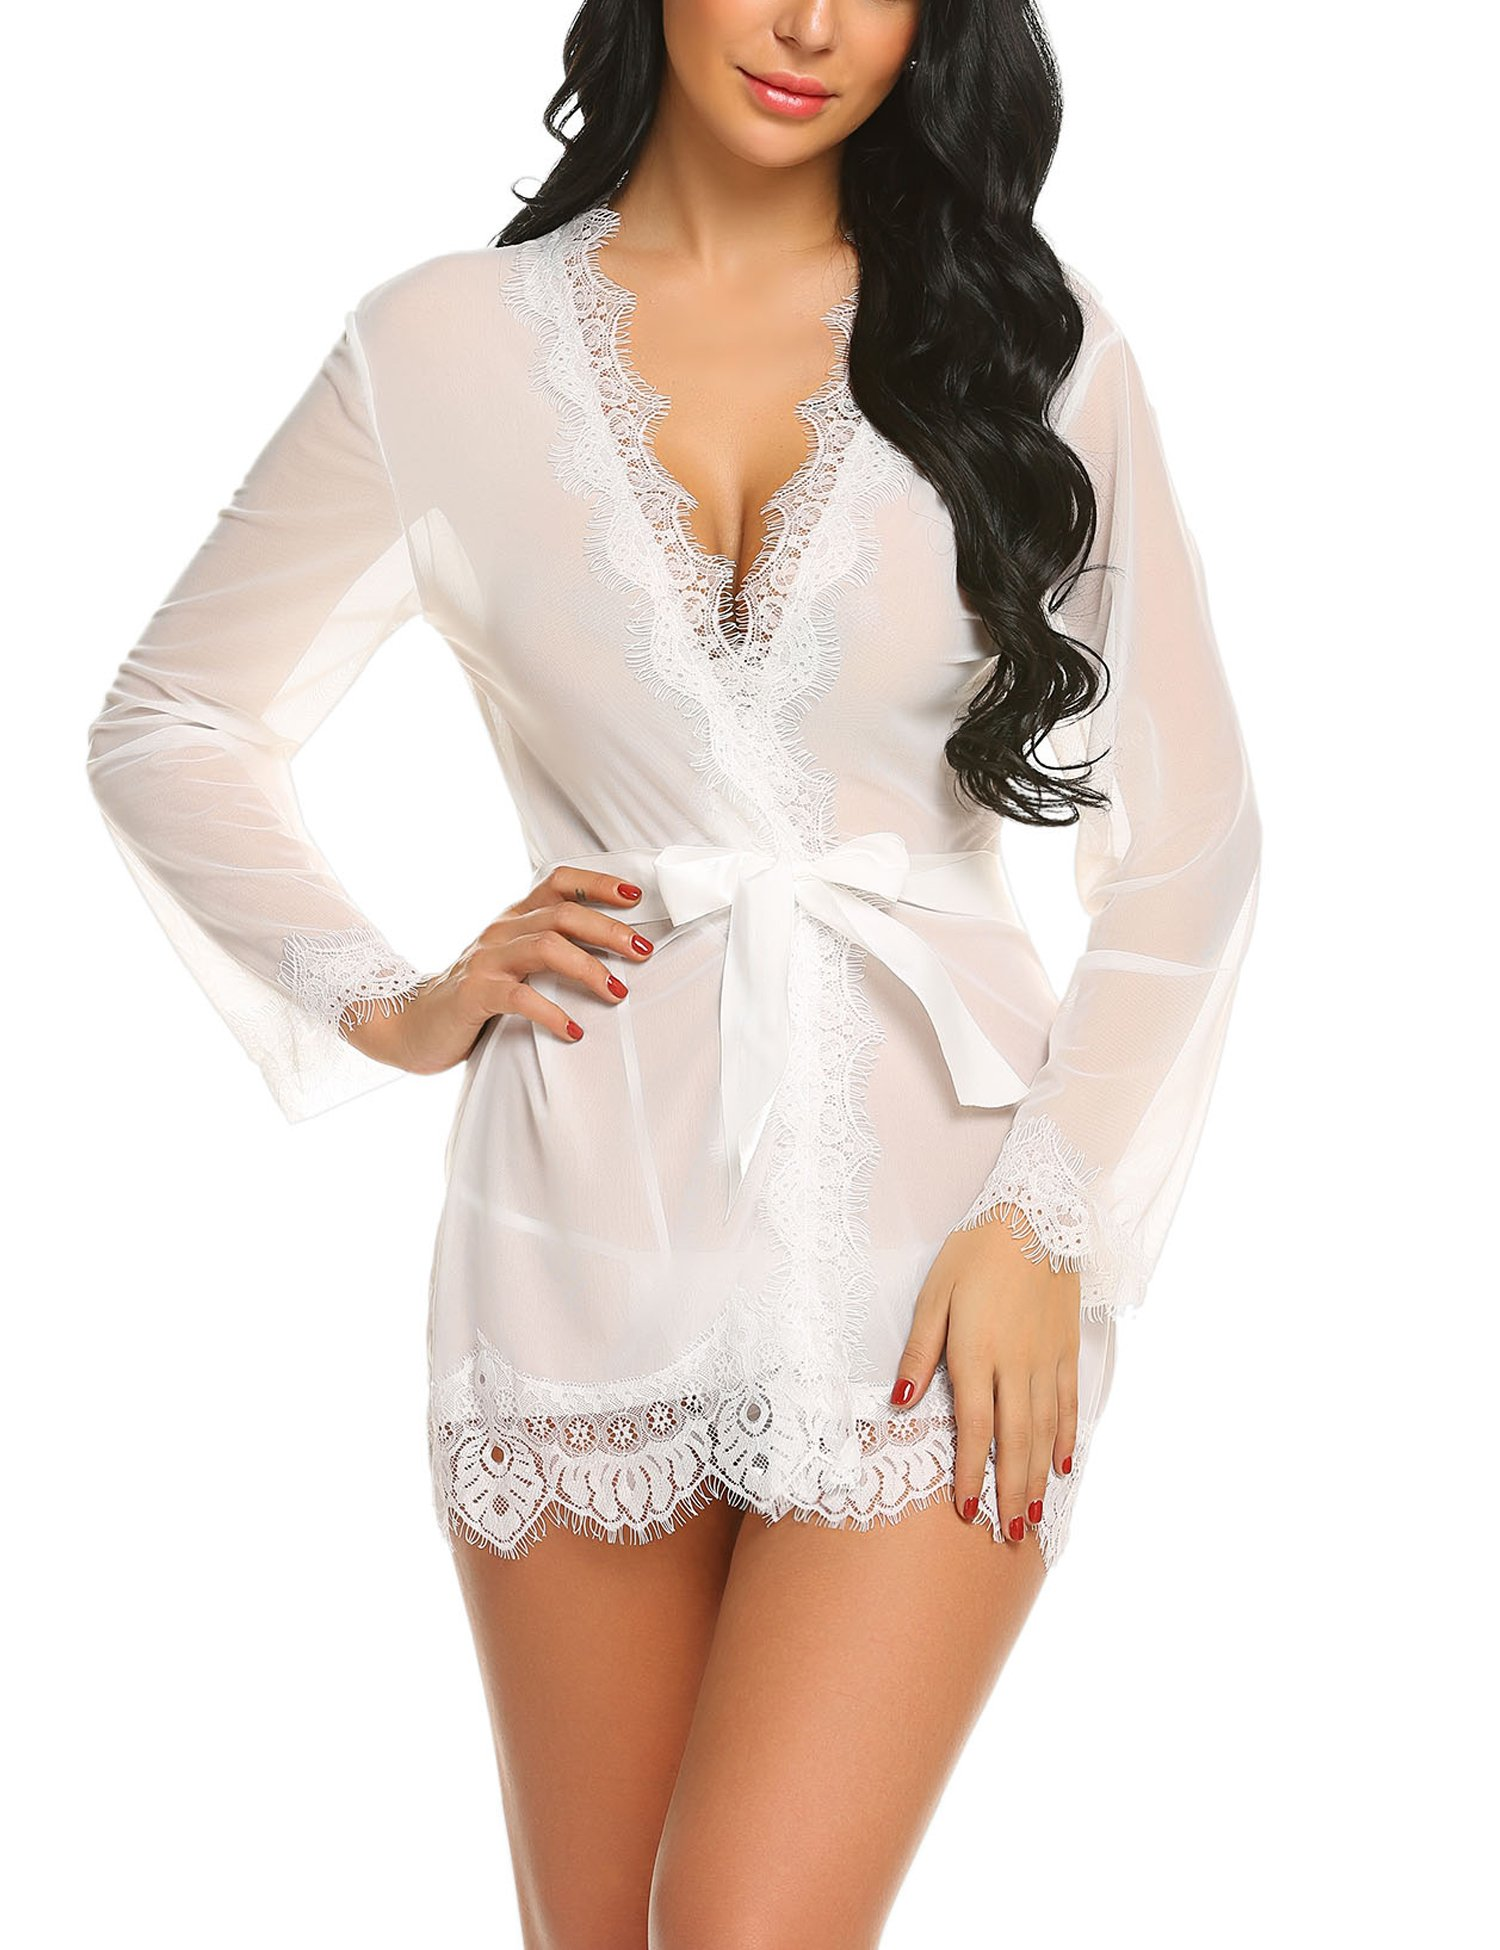 bd38c060a5 See all customer reviews · ADOME Women Lingerie Lace Kimono Robe Babydoll  Sheer Lace Up Nightgown with Belted product image